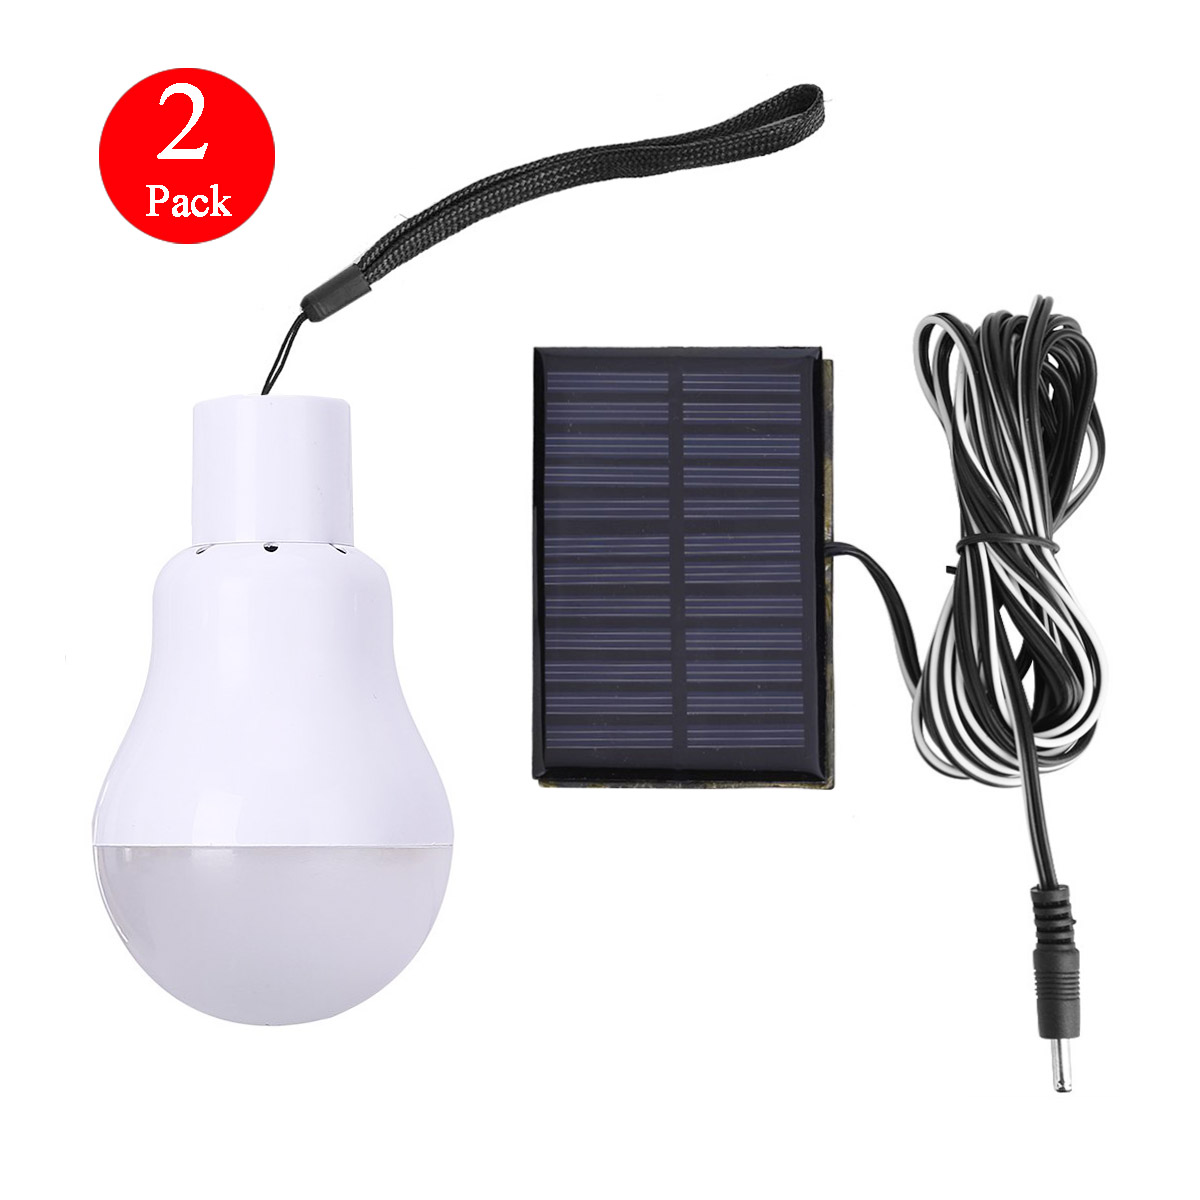 15w Rechargeable Solar Panel Powered LED Bulb Lamp Home Camping ...